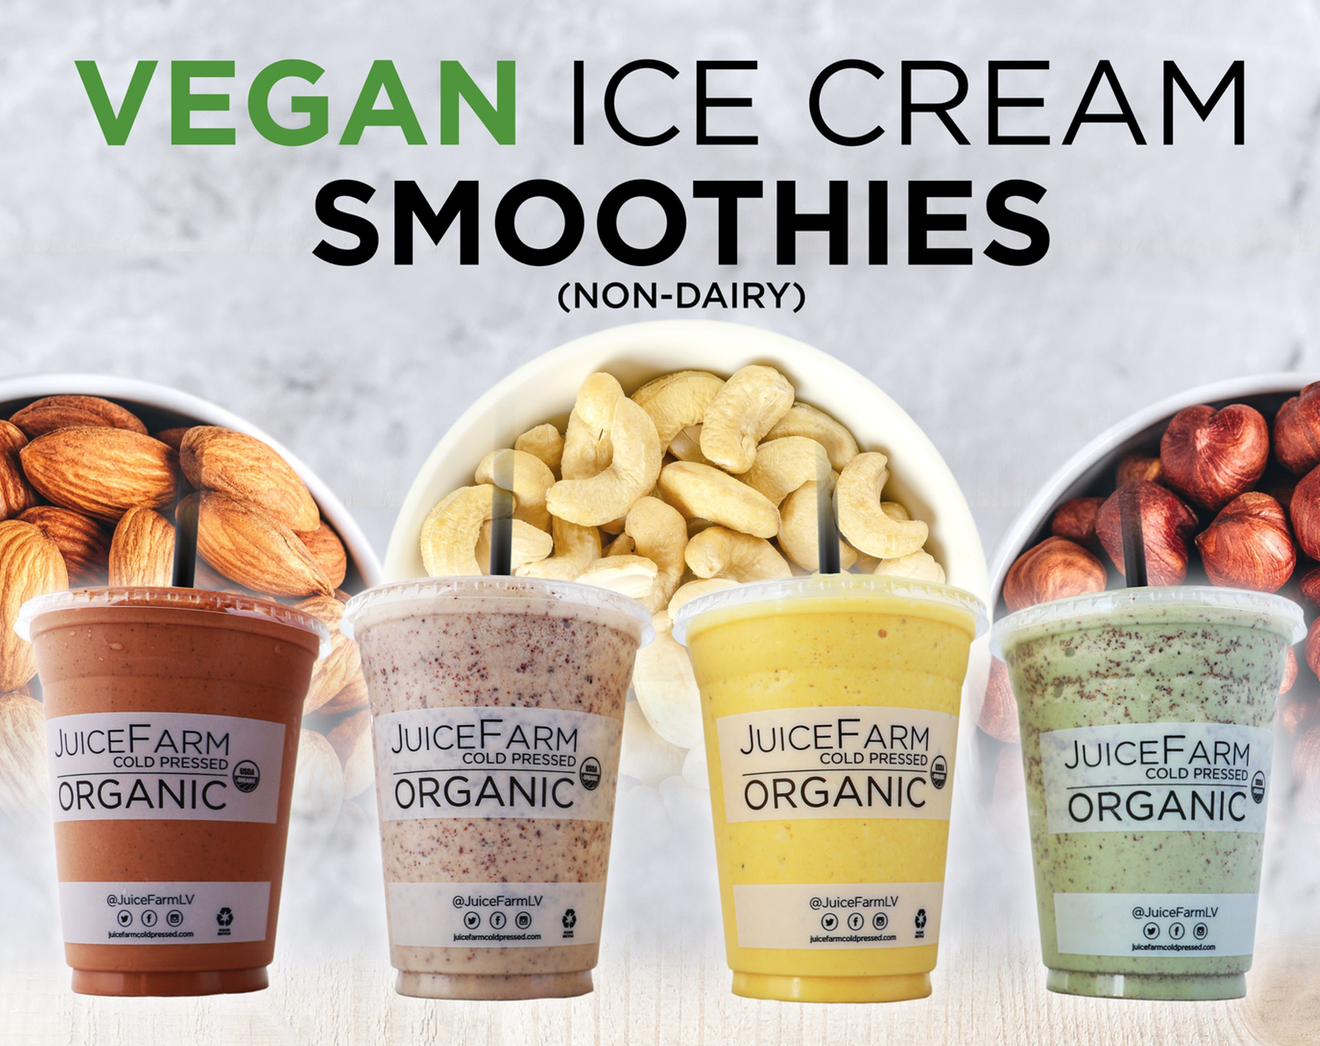 Vegan Ice Cream Smoothies (non-diary)